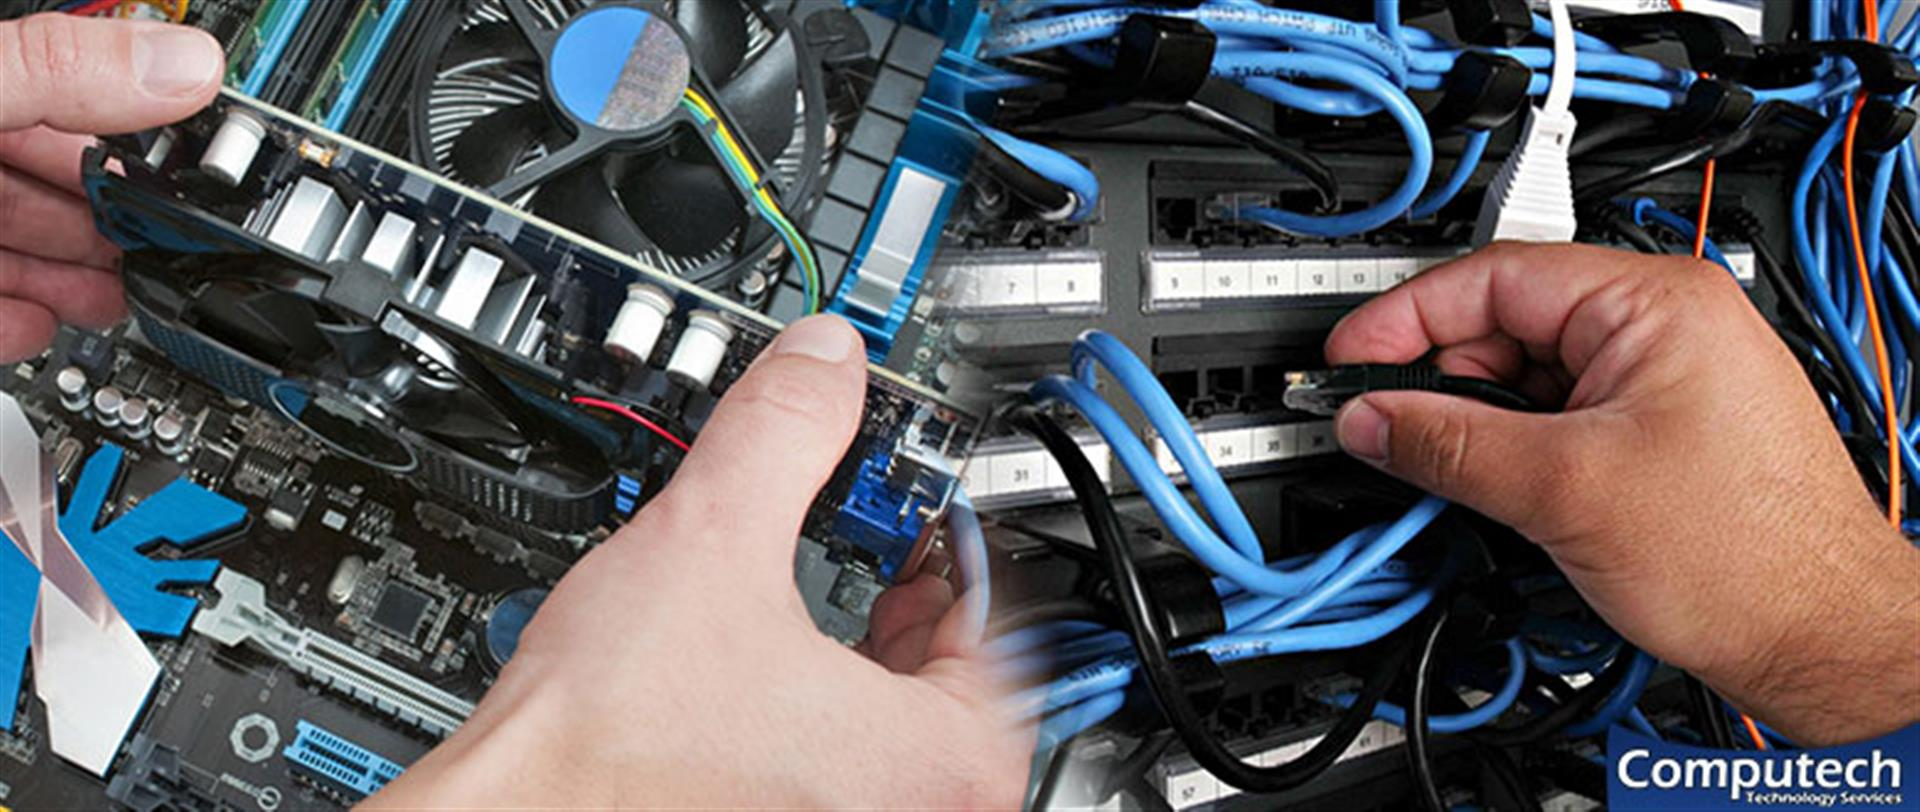 Glennville Georgia Onsite PC & Printer Repairs, Networking, Voice & Data Cabling Contractors